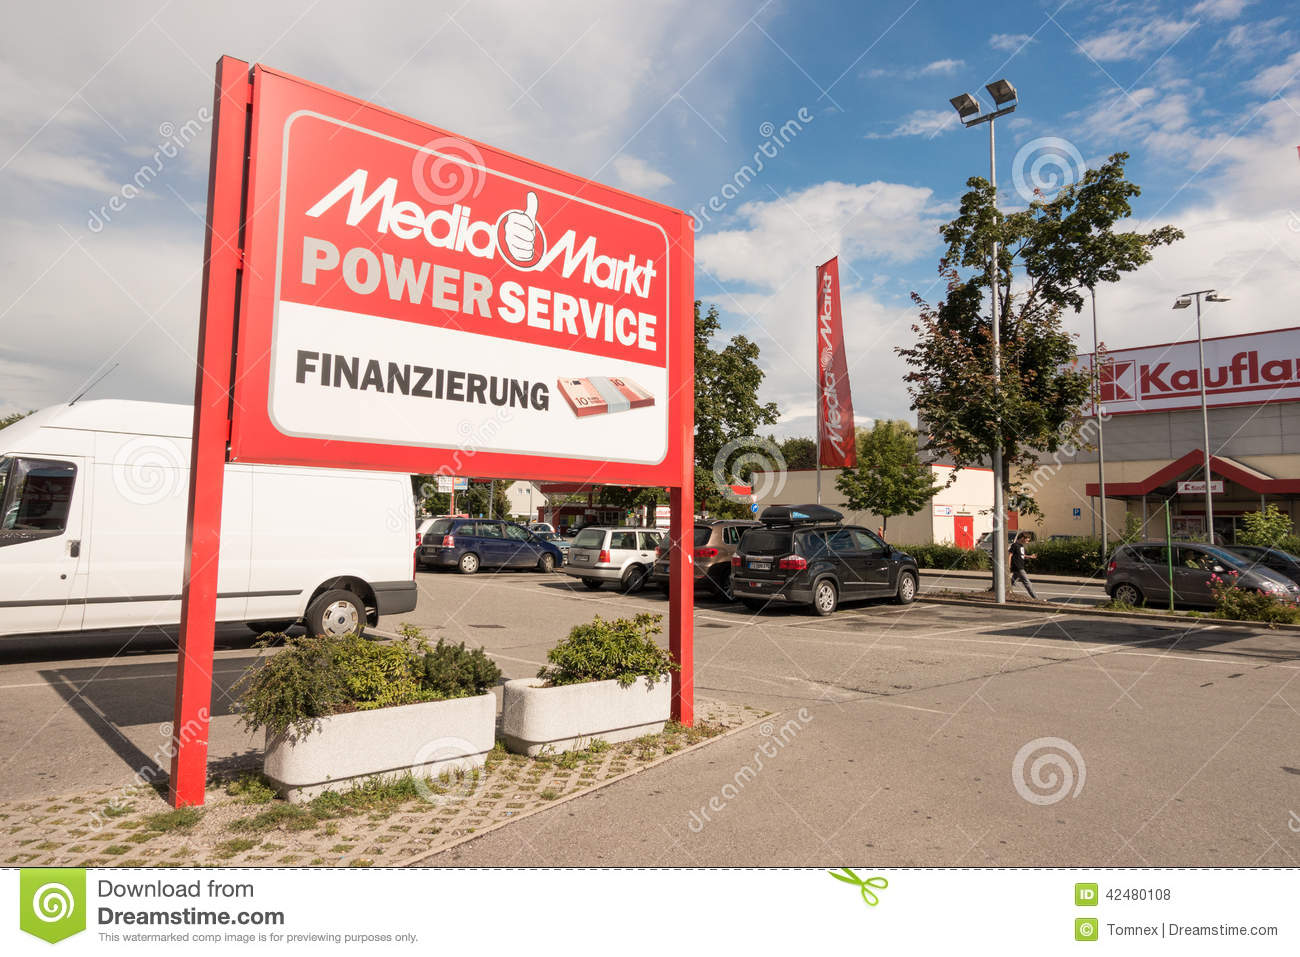 Copy Shop Koblenz Media Markt Service And Financing Editorial Stock Photo Image Of